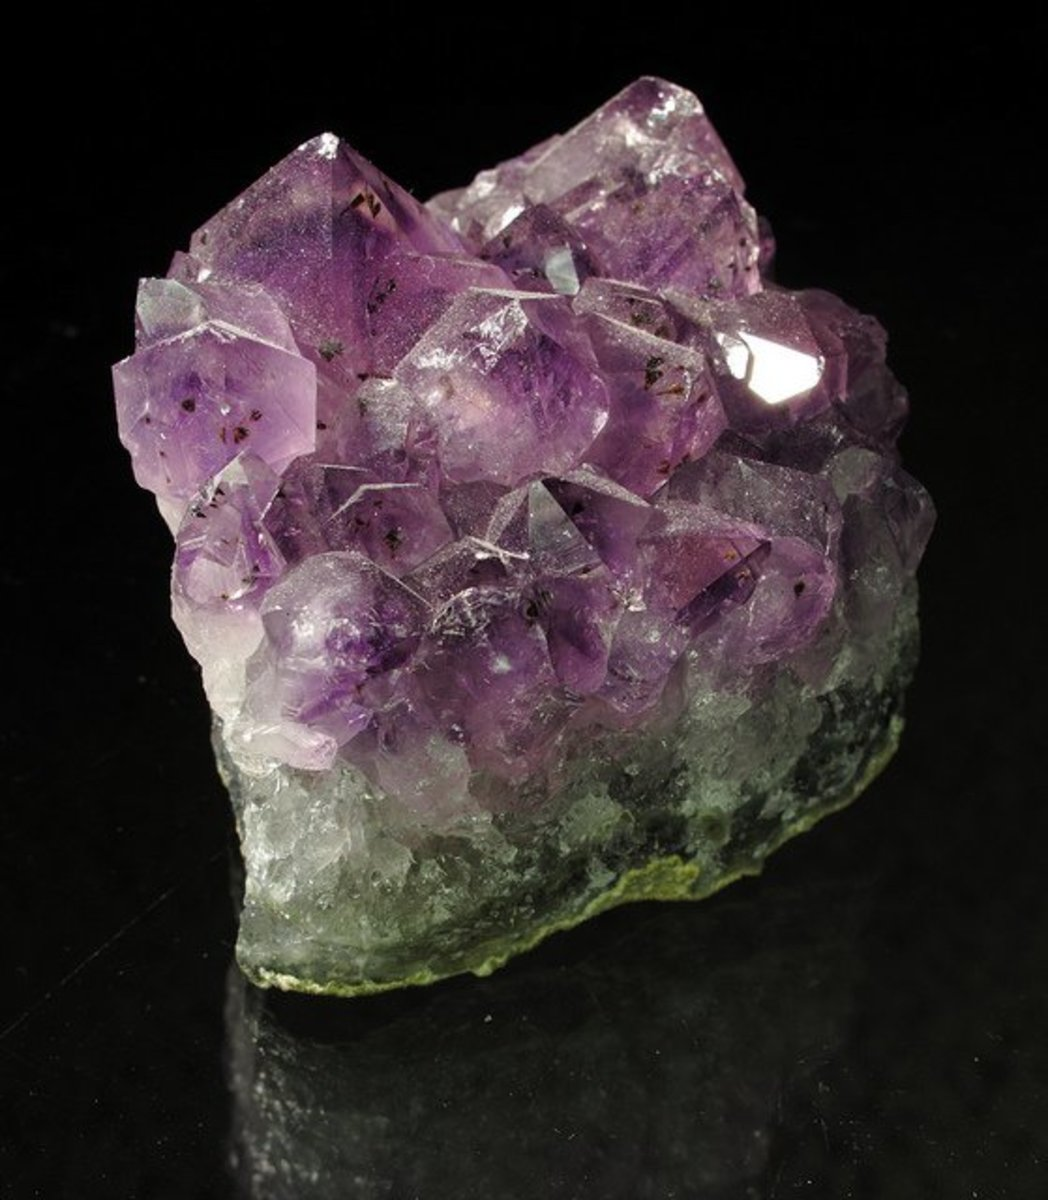 Crystals  need to be recharged  so that they are able to be at their best when we wish to use their energies.